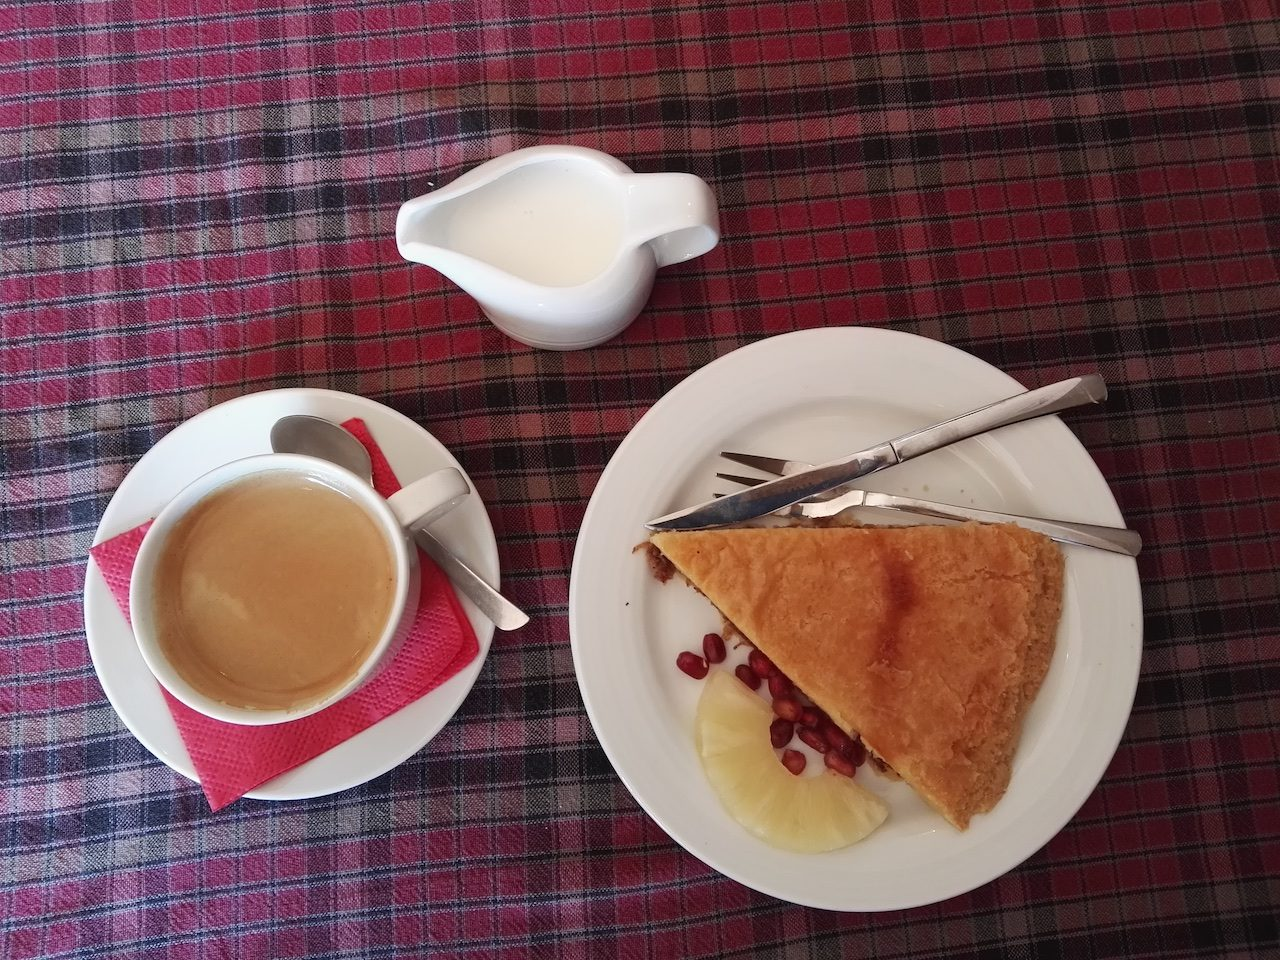 Coffee and apple pie